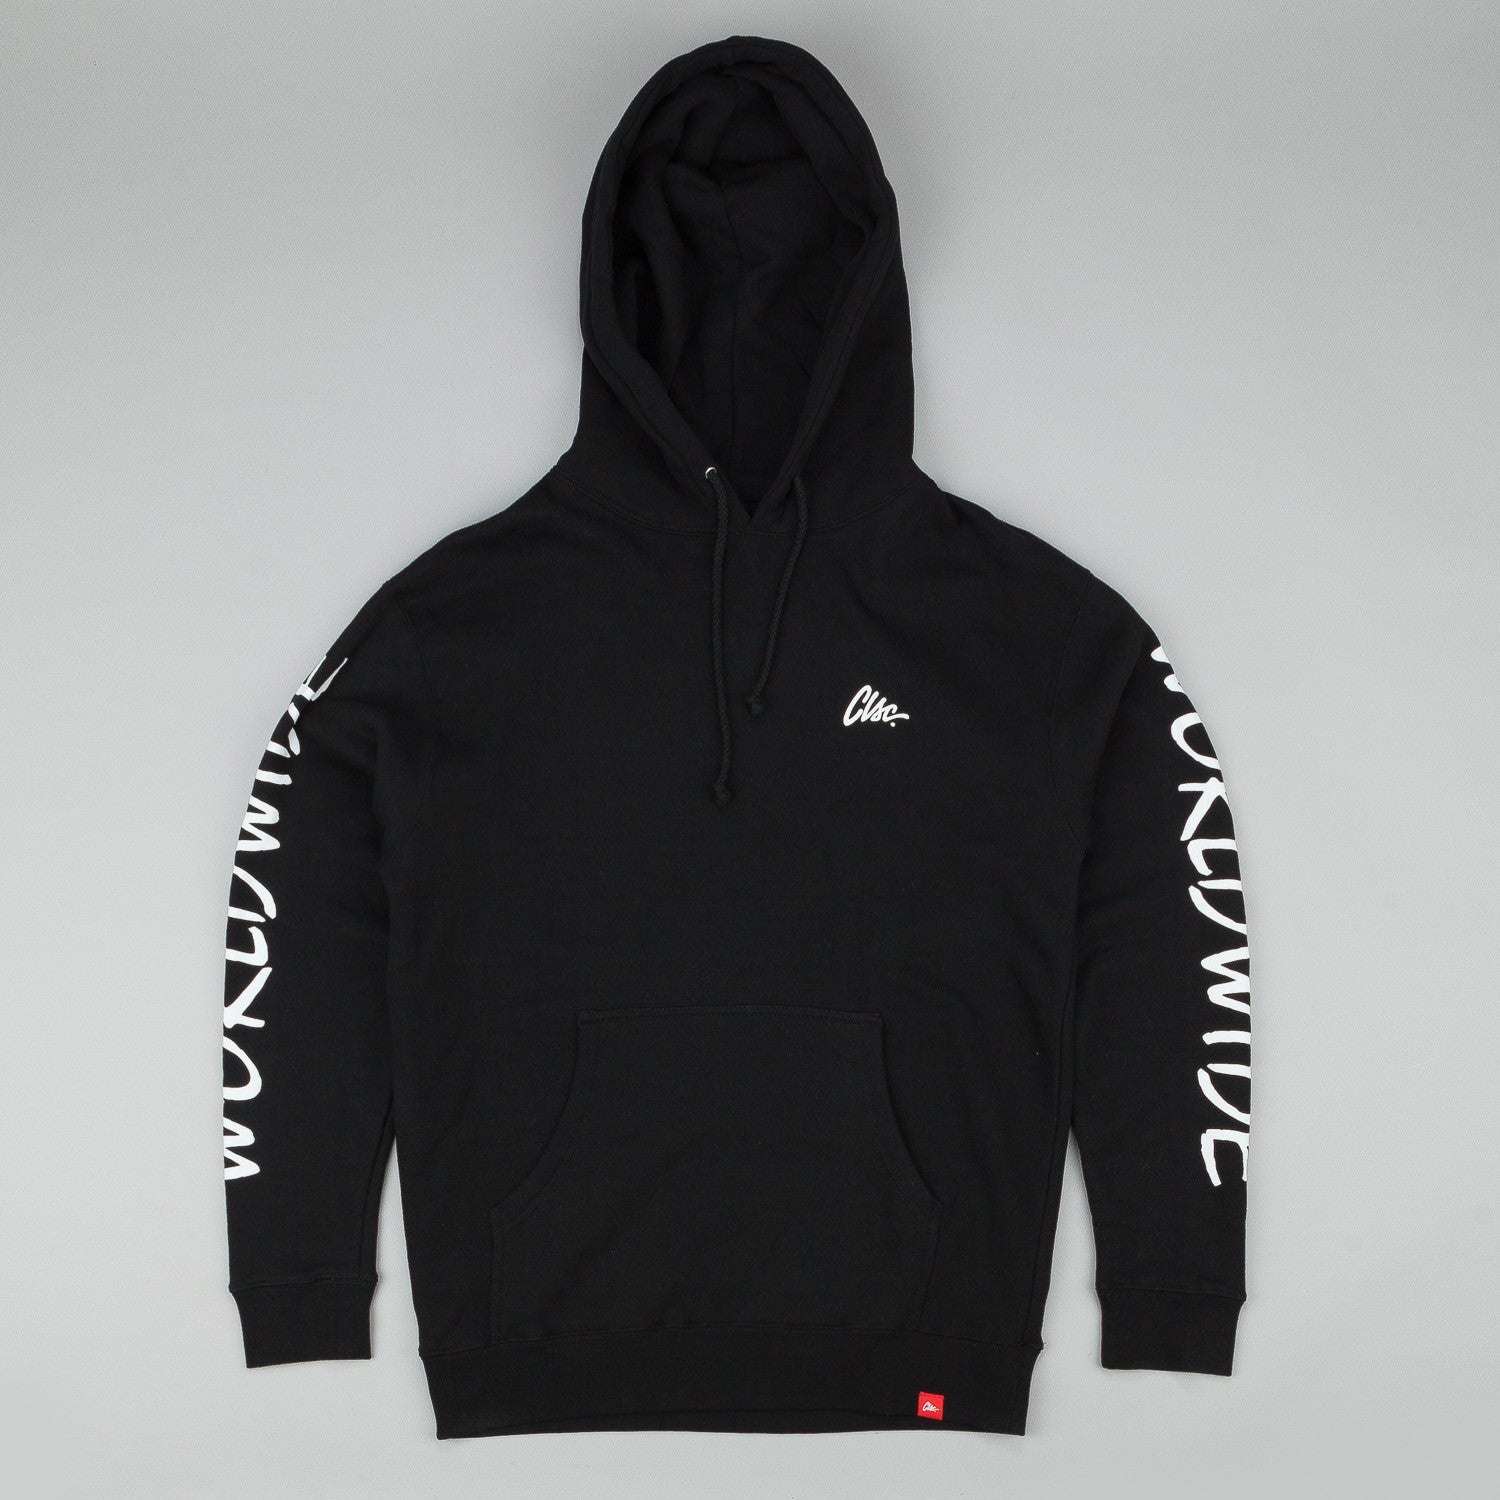 CLSC Attitude Hooded Sweatshirt - Black